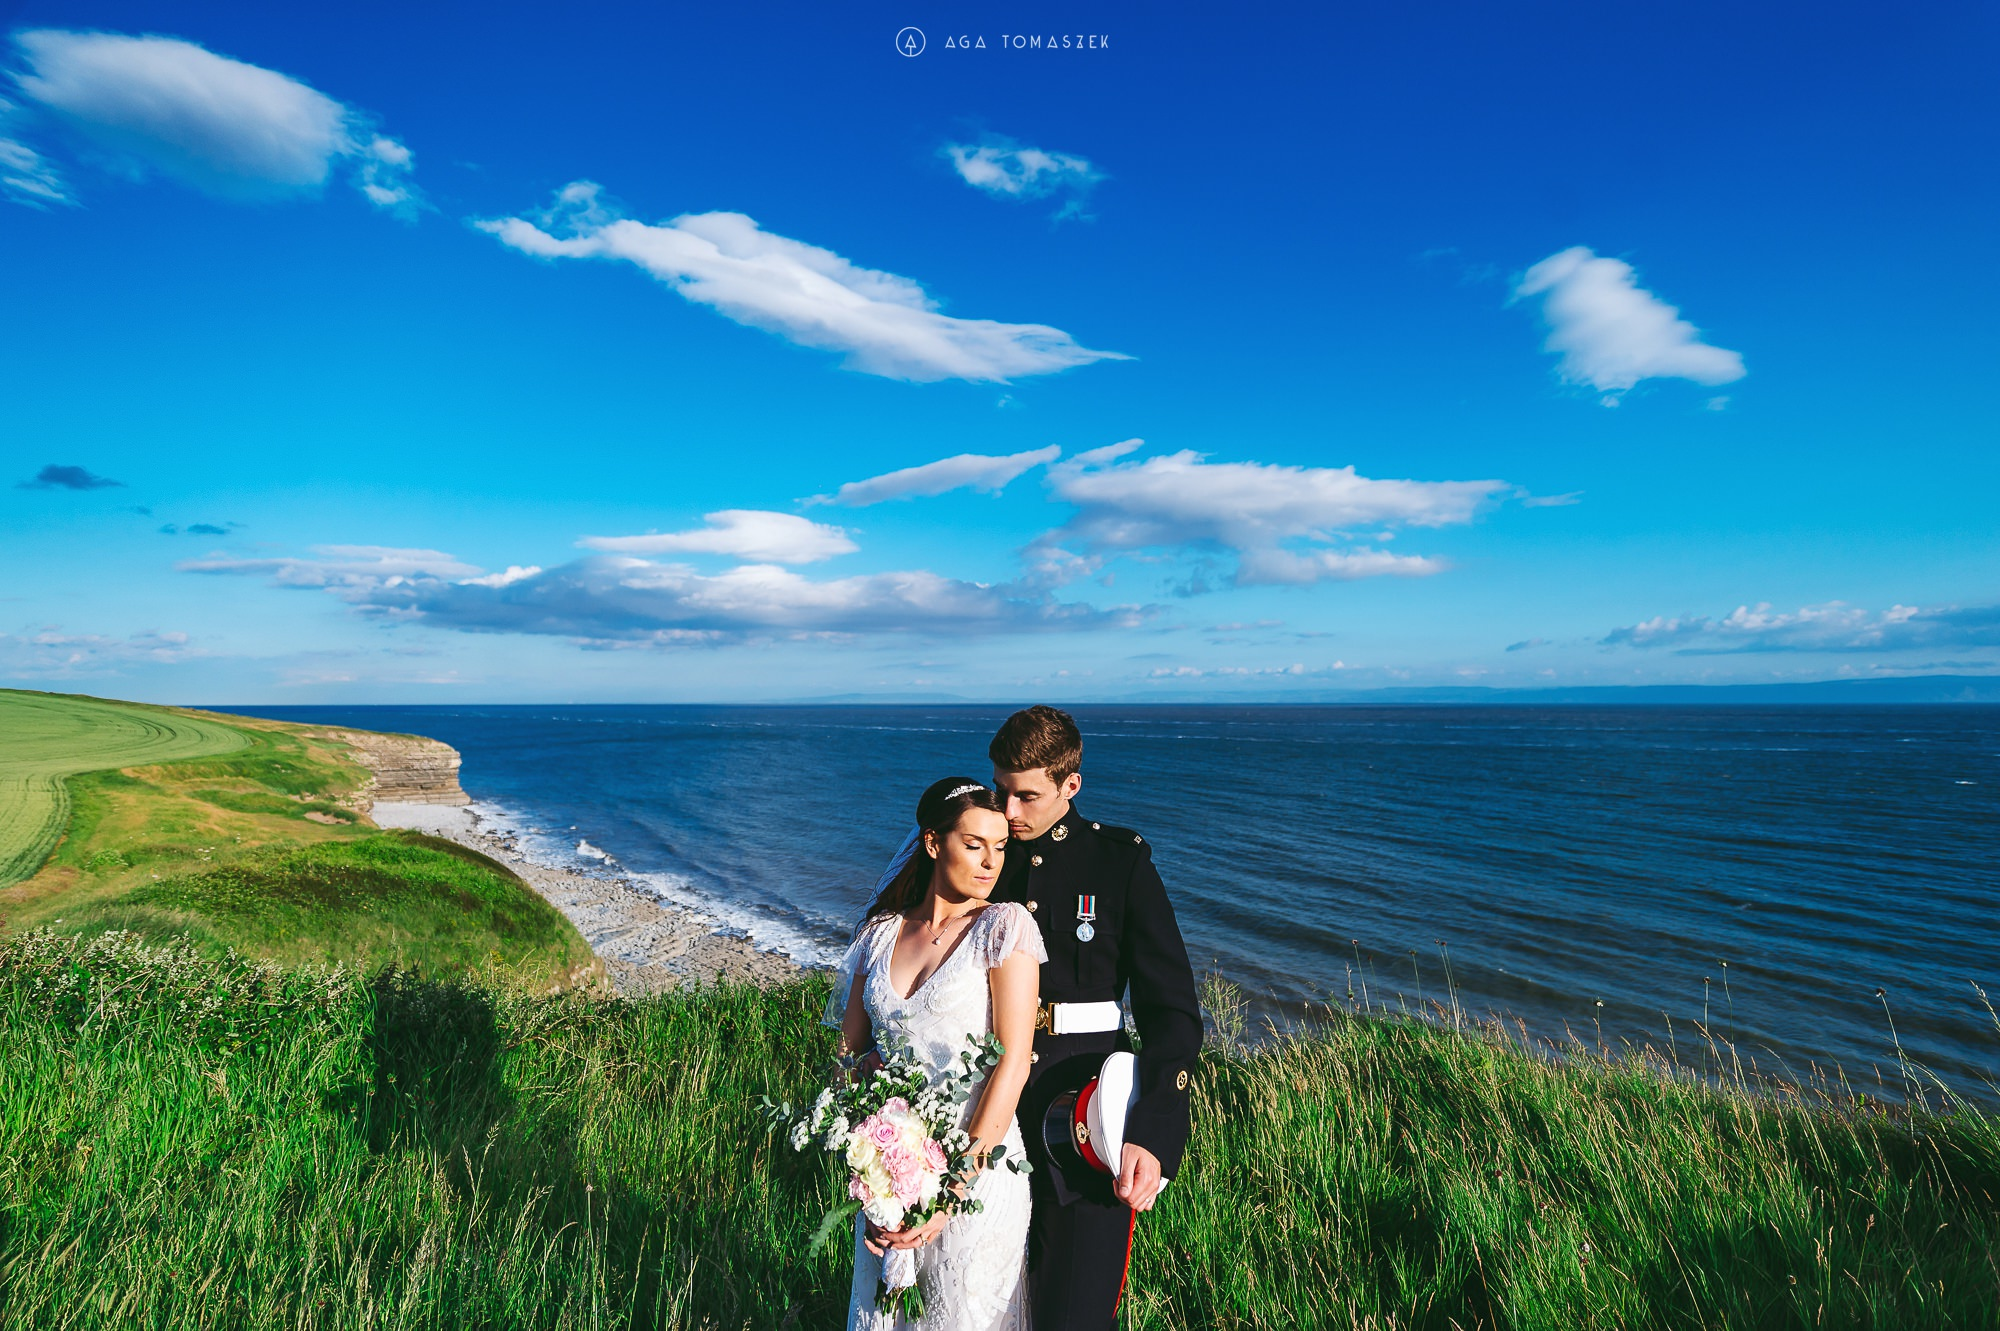 cardiff-wedding-photographer-aga-tomaszek_1026